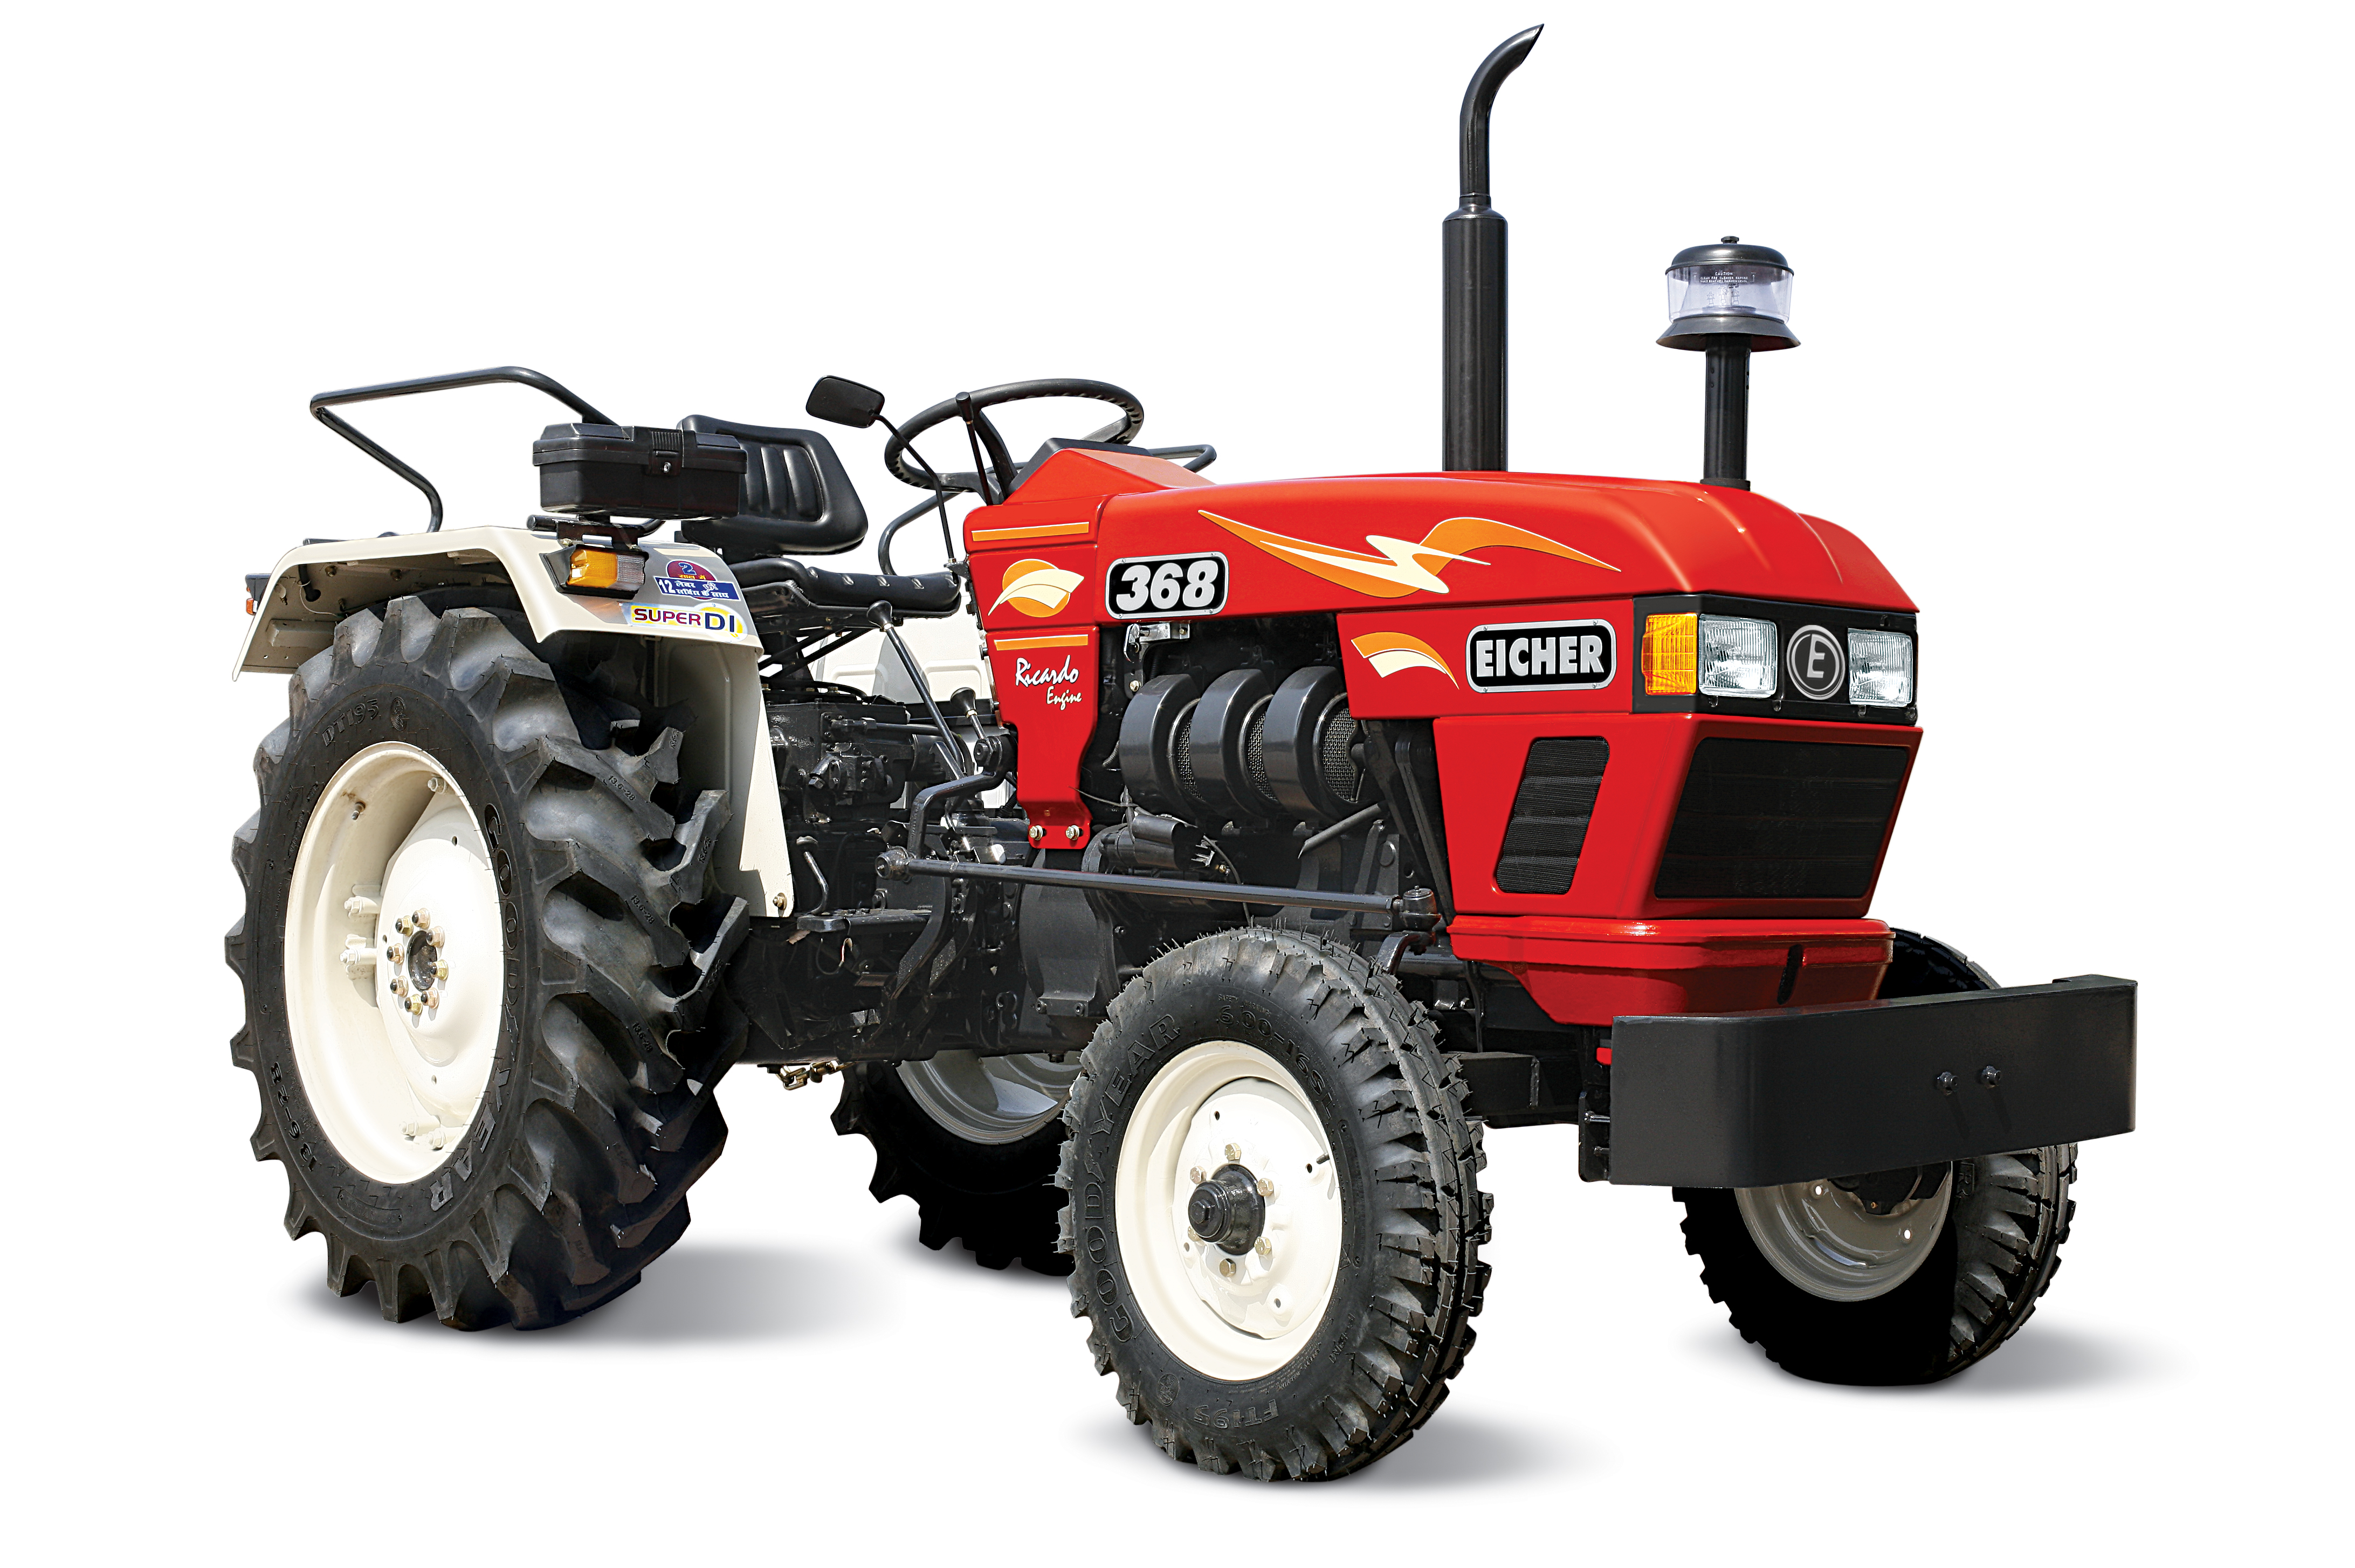 Eicher tractors with price